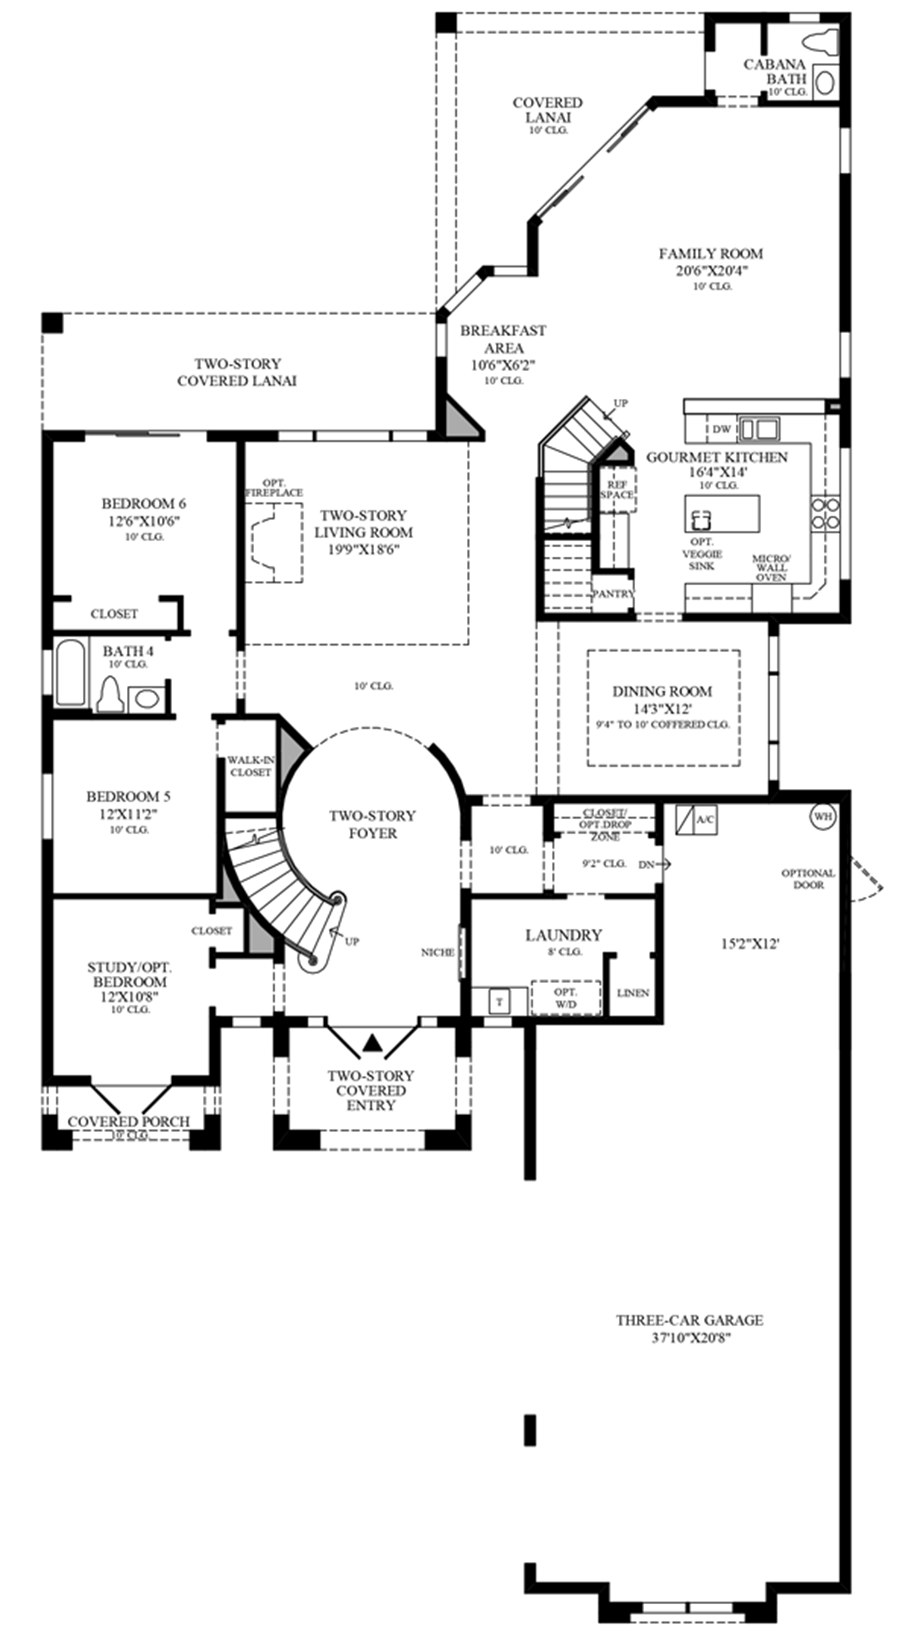 Optional 3-Car Garage Floor Plan